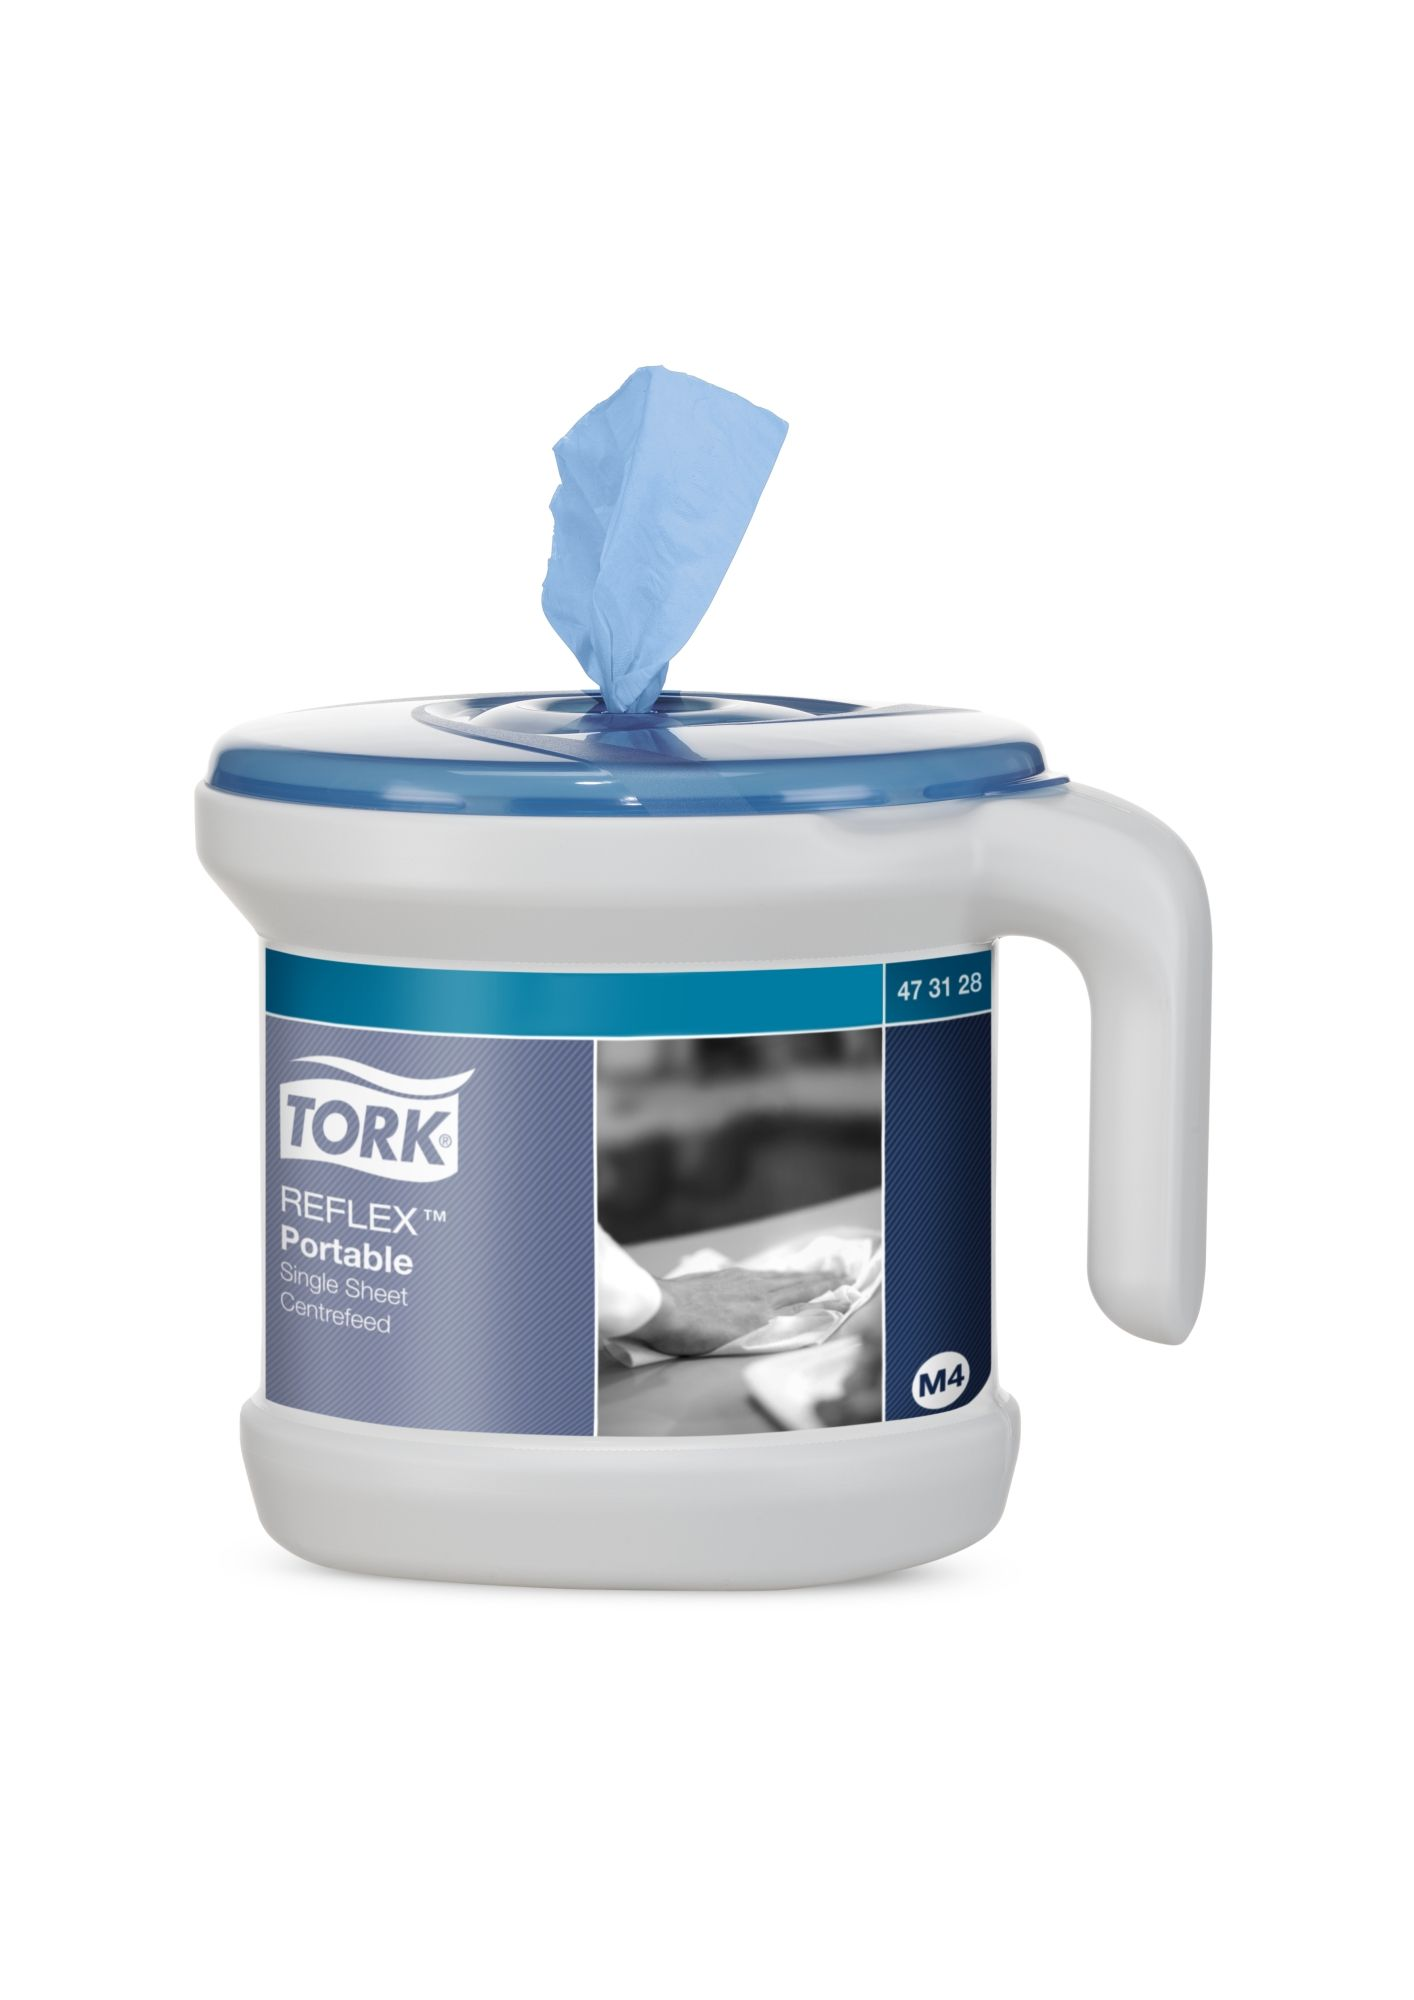 Tork Reflex Portable Centrefeed Dispenser System The Portable